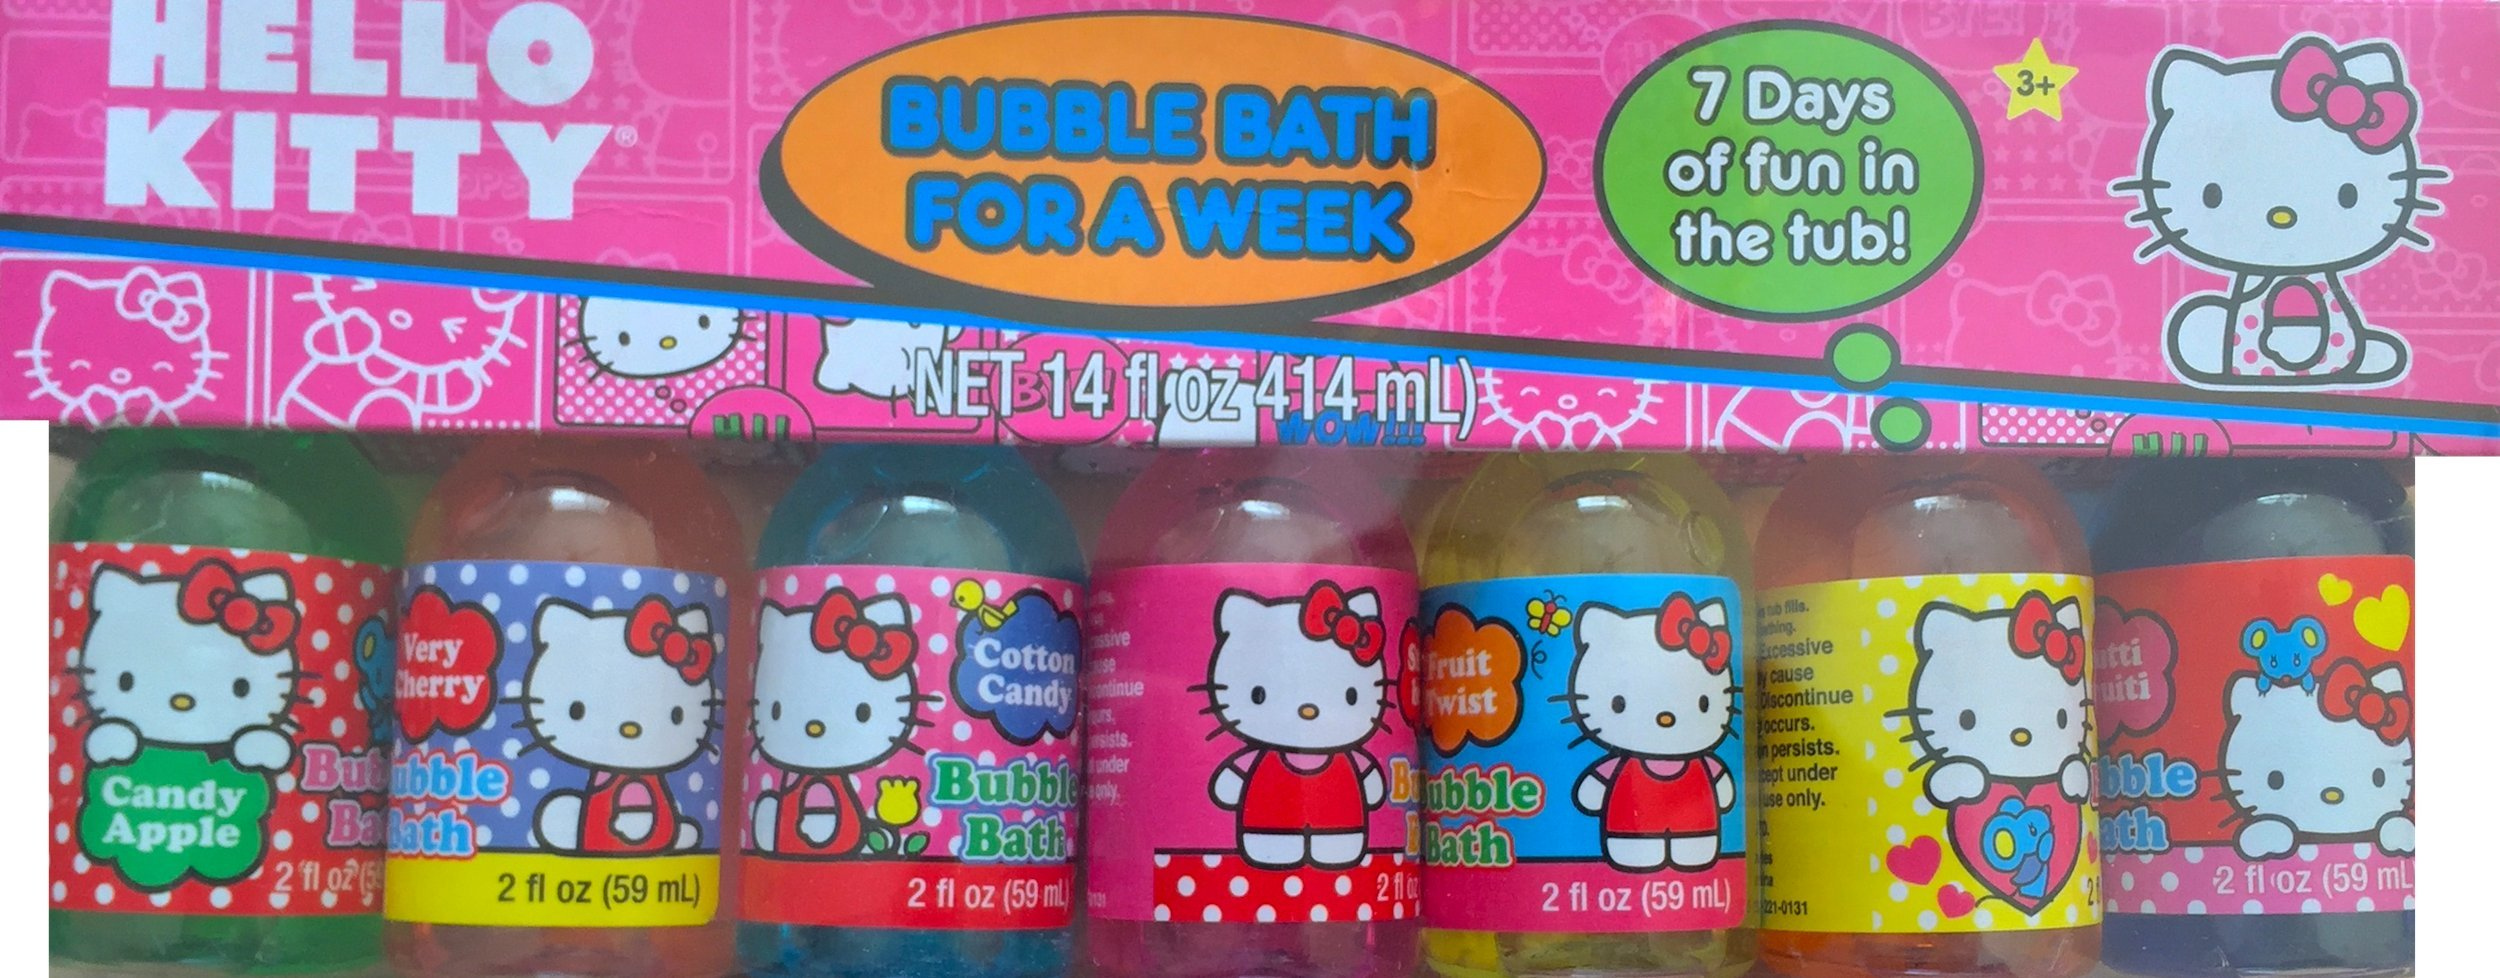 Children's 7 Days Scented Bubble Baths Disney Princesses or Hello Kitty (hello kitty) by Bubble Bath